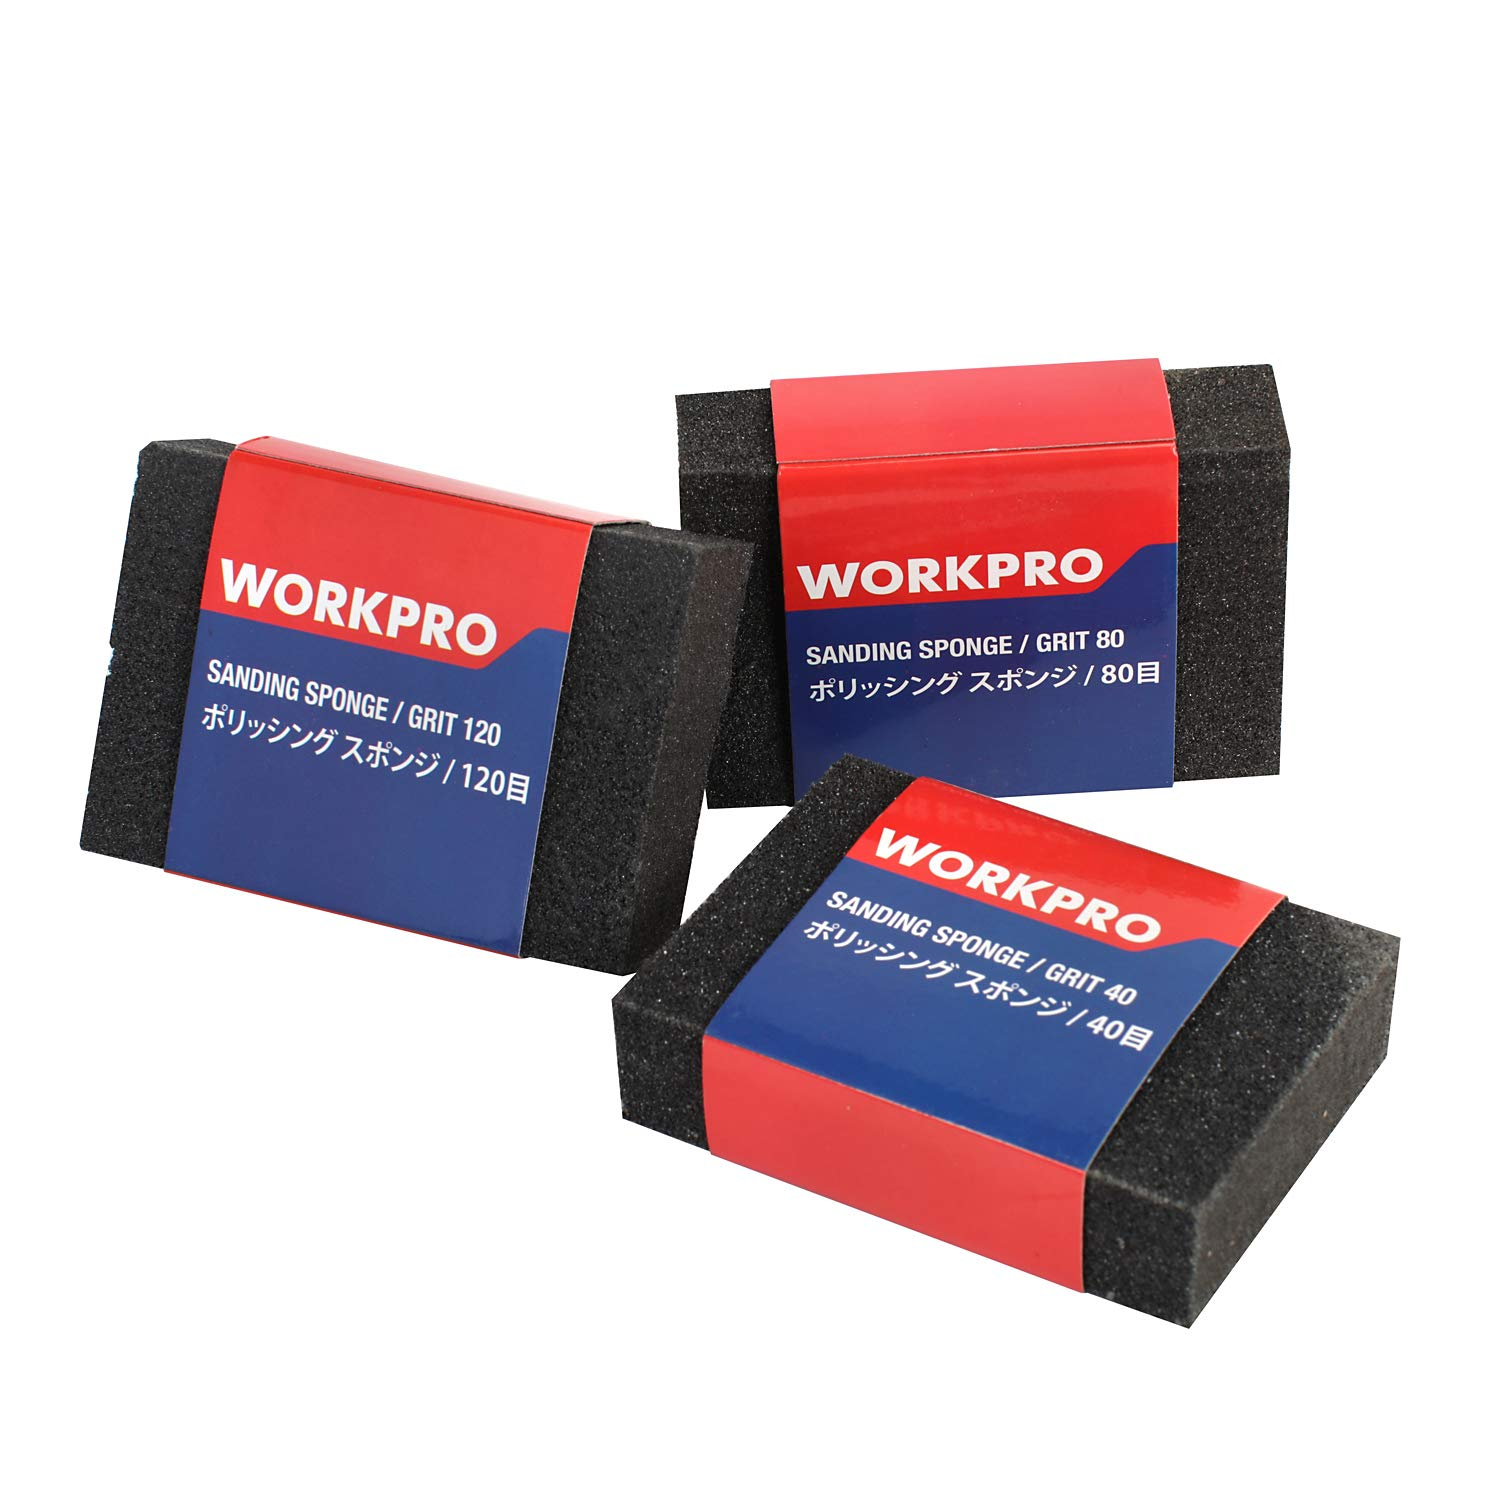 Metal Sanding for Wood Furniture Finishing Paint Finishing WORKPRO 24-Piece Sandpaper Combo Kit 80-600 Grit Sandpaper holder Included with Sand Sponges 40//80//120 Grit and Sanding Block